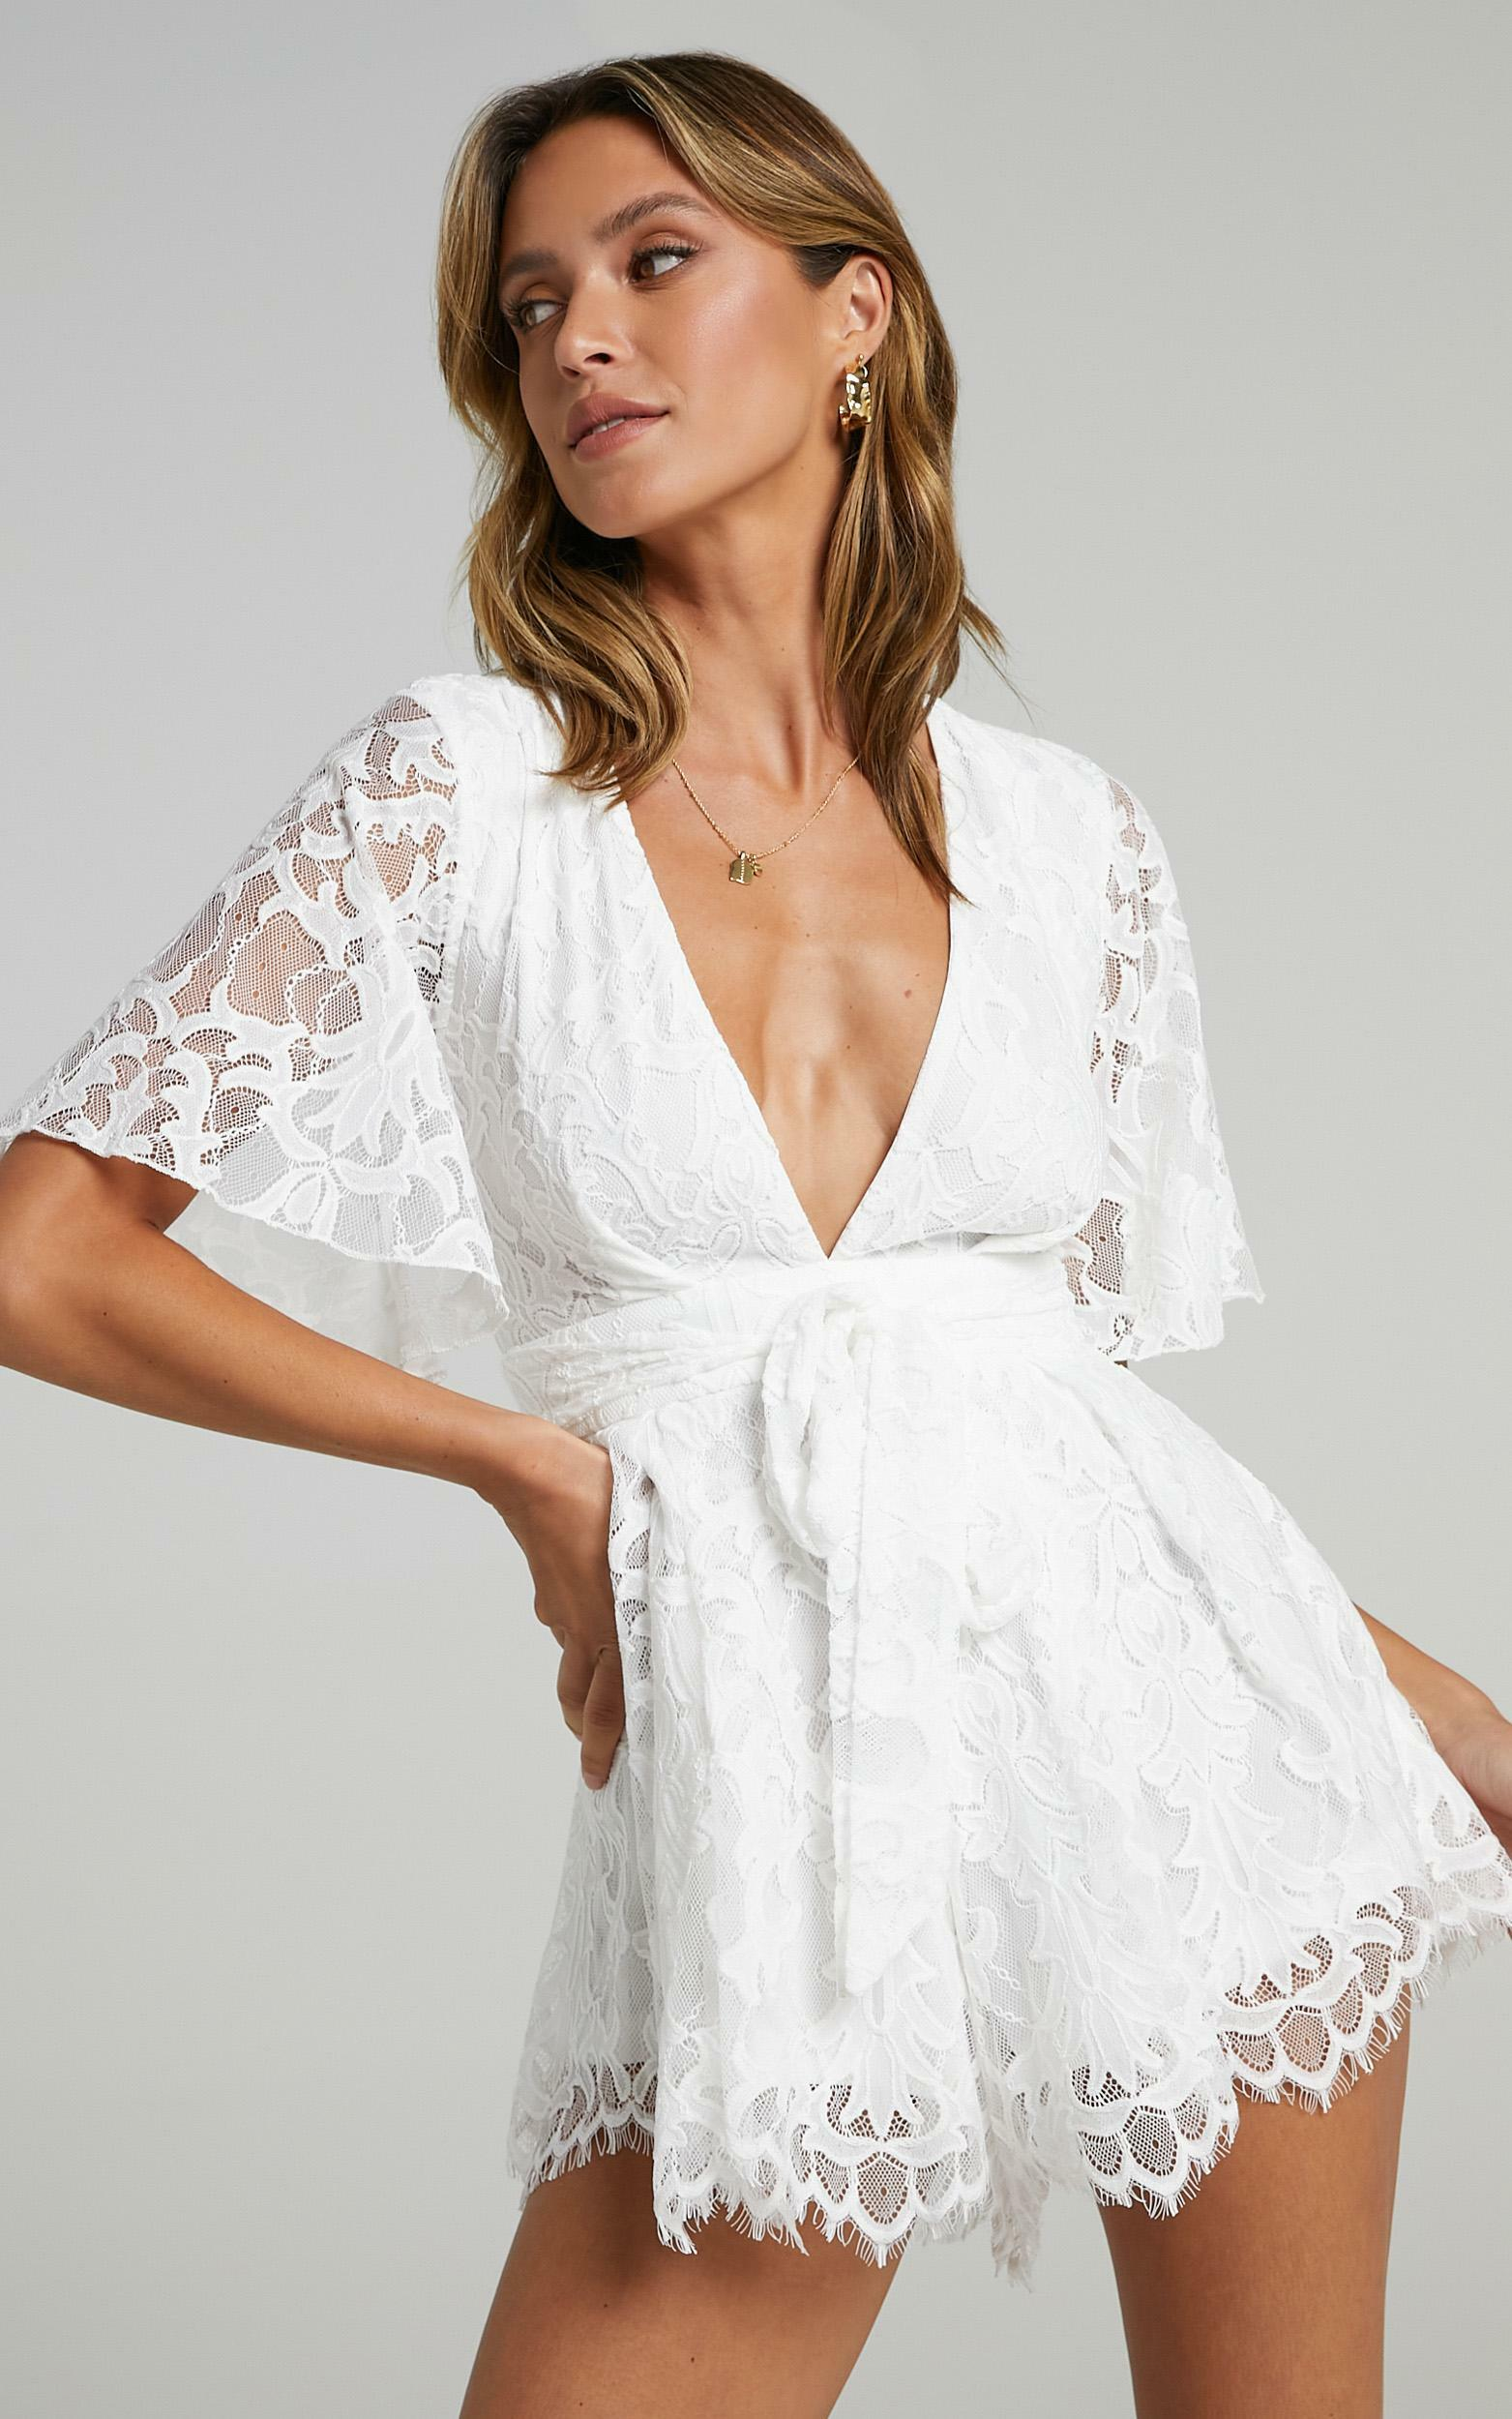 New World Playsuit in white lace - 18 (XXXL), White, hi-res image number null